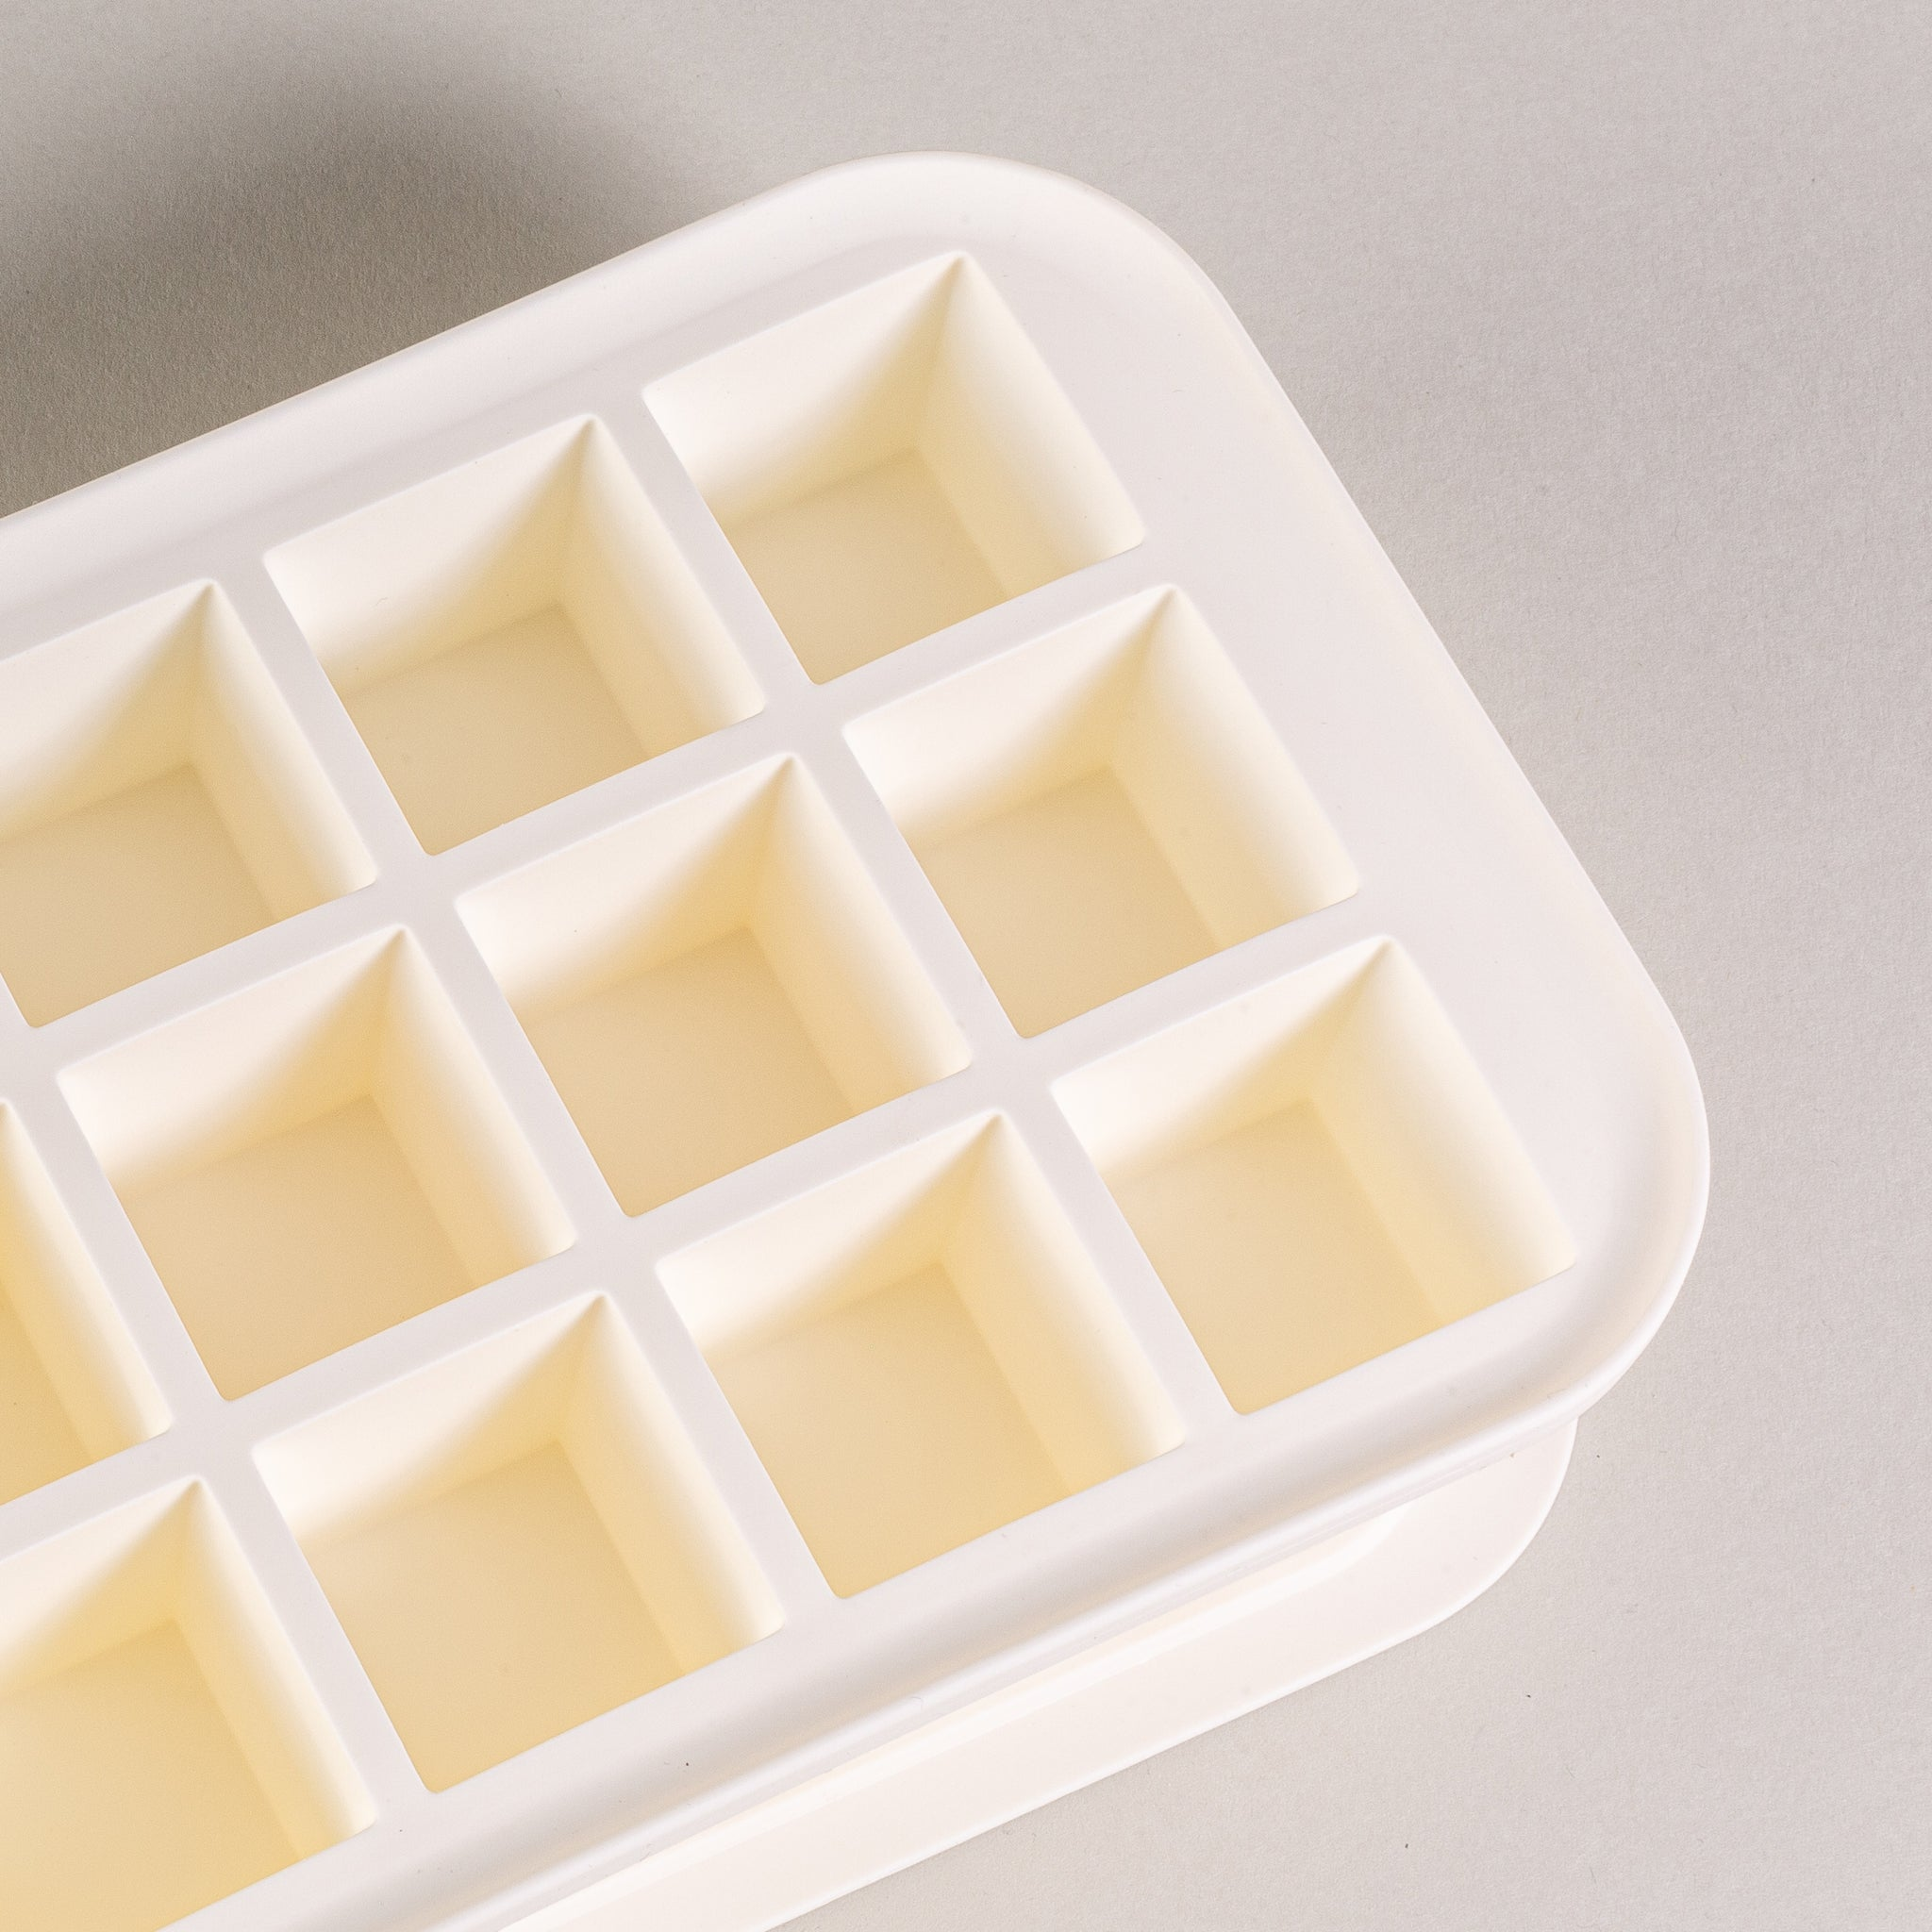 Everyday Peak Ice Tray